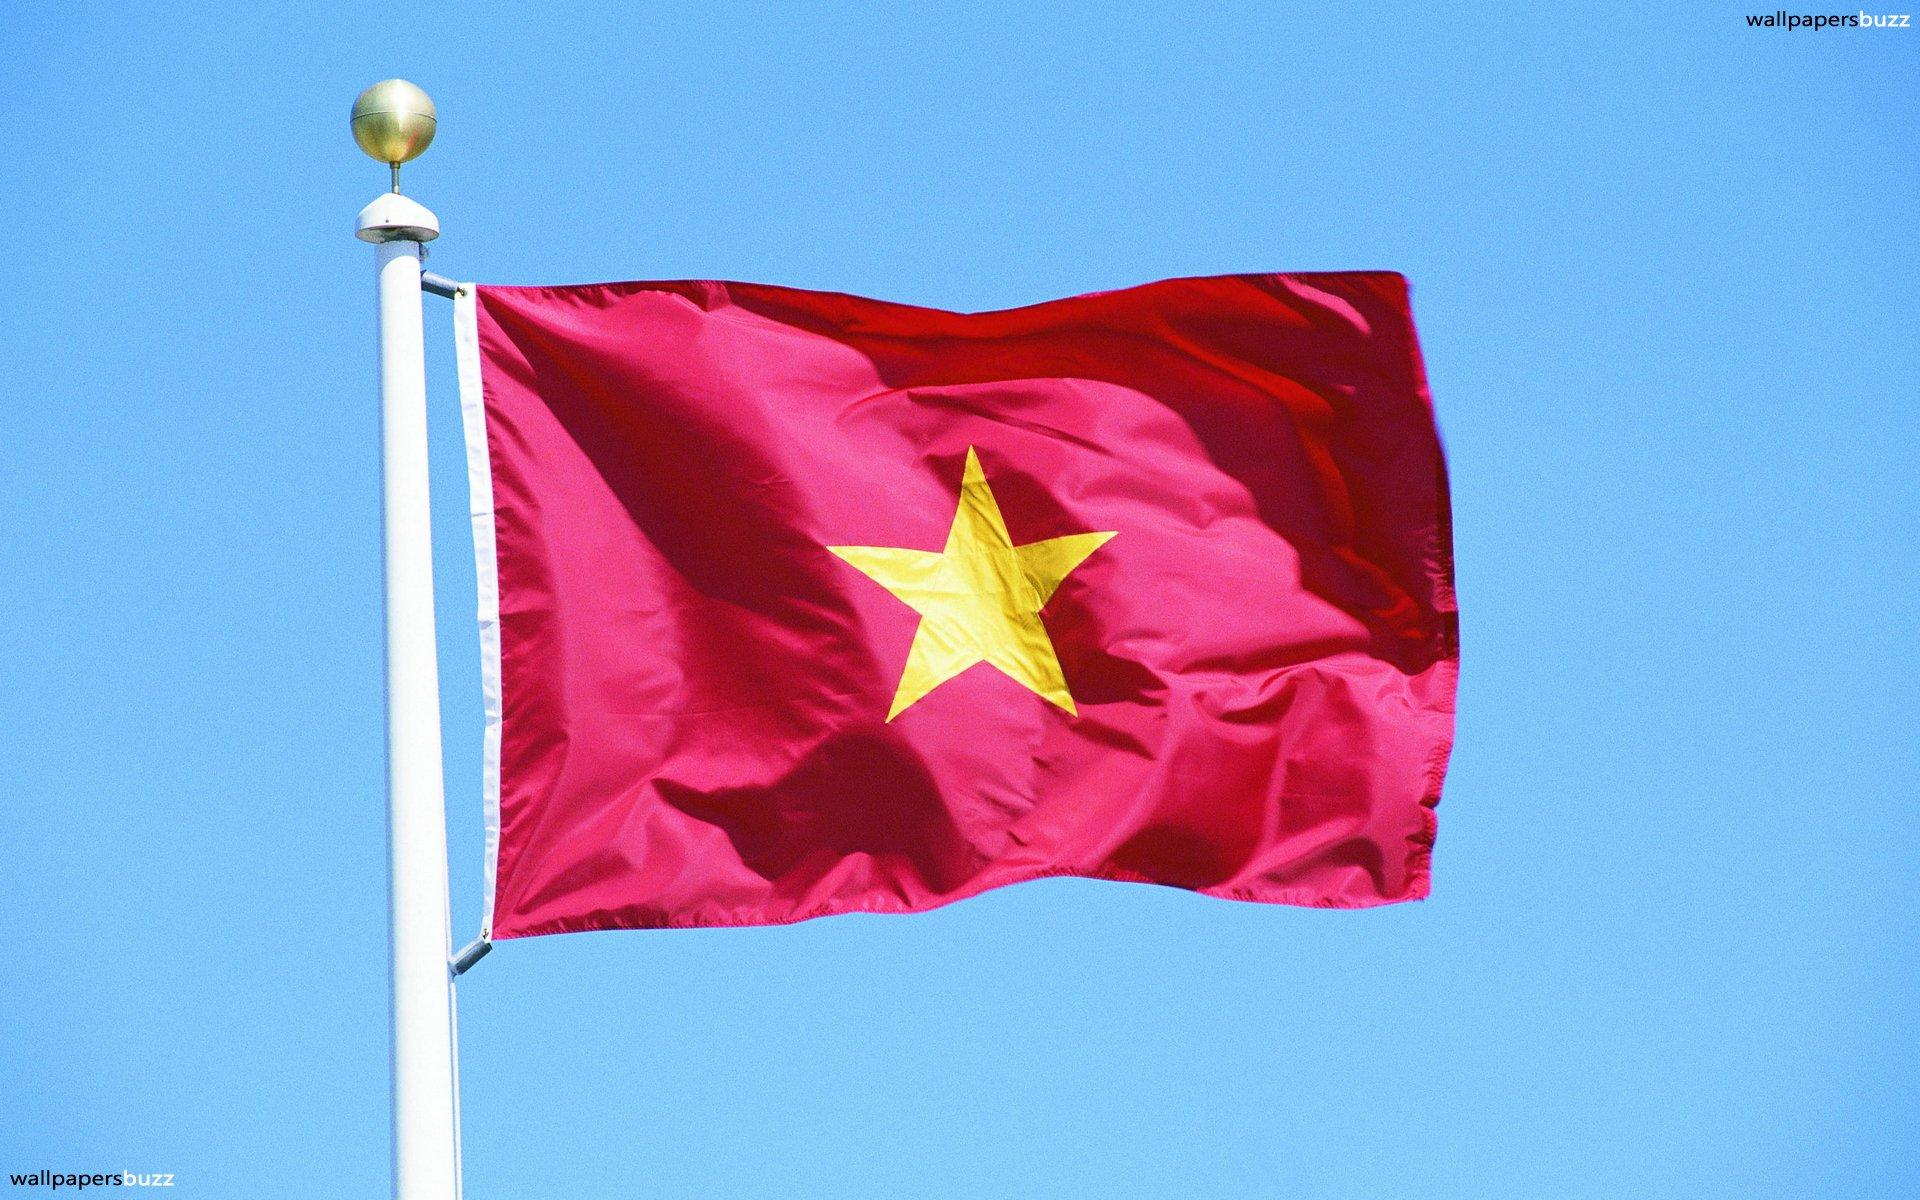 The flag of Vietnam HD Wallpaper